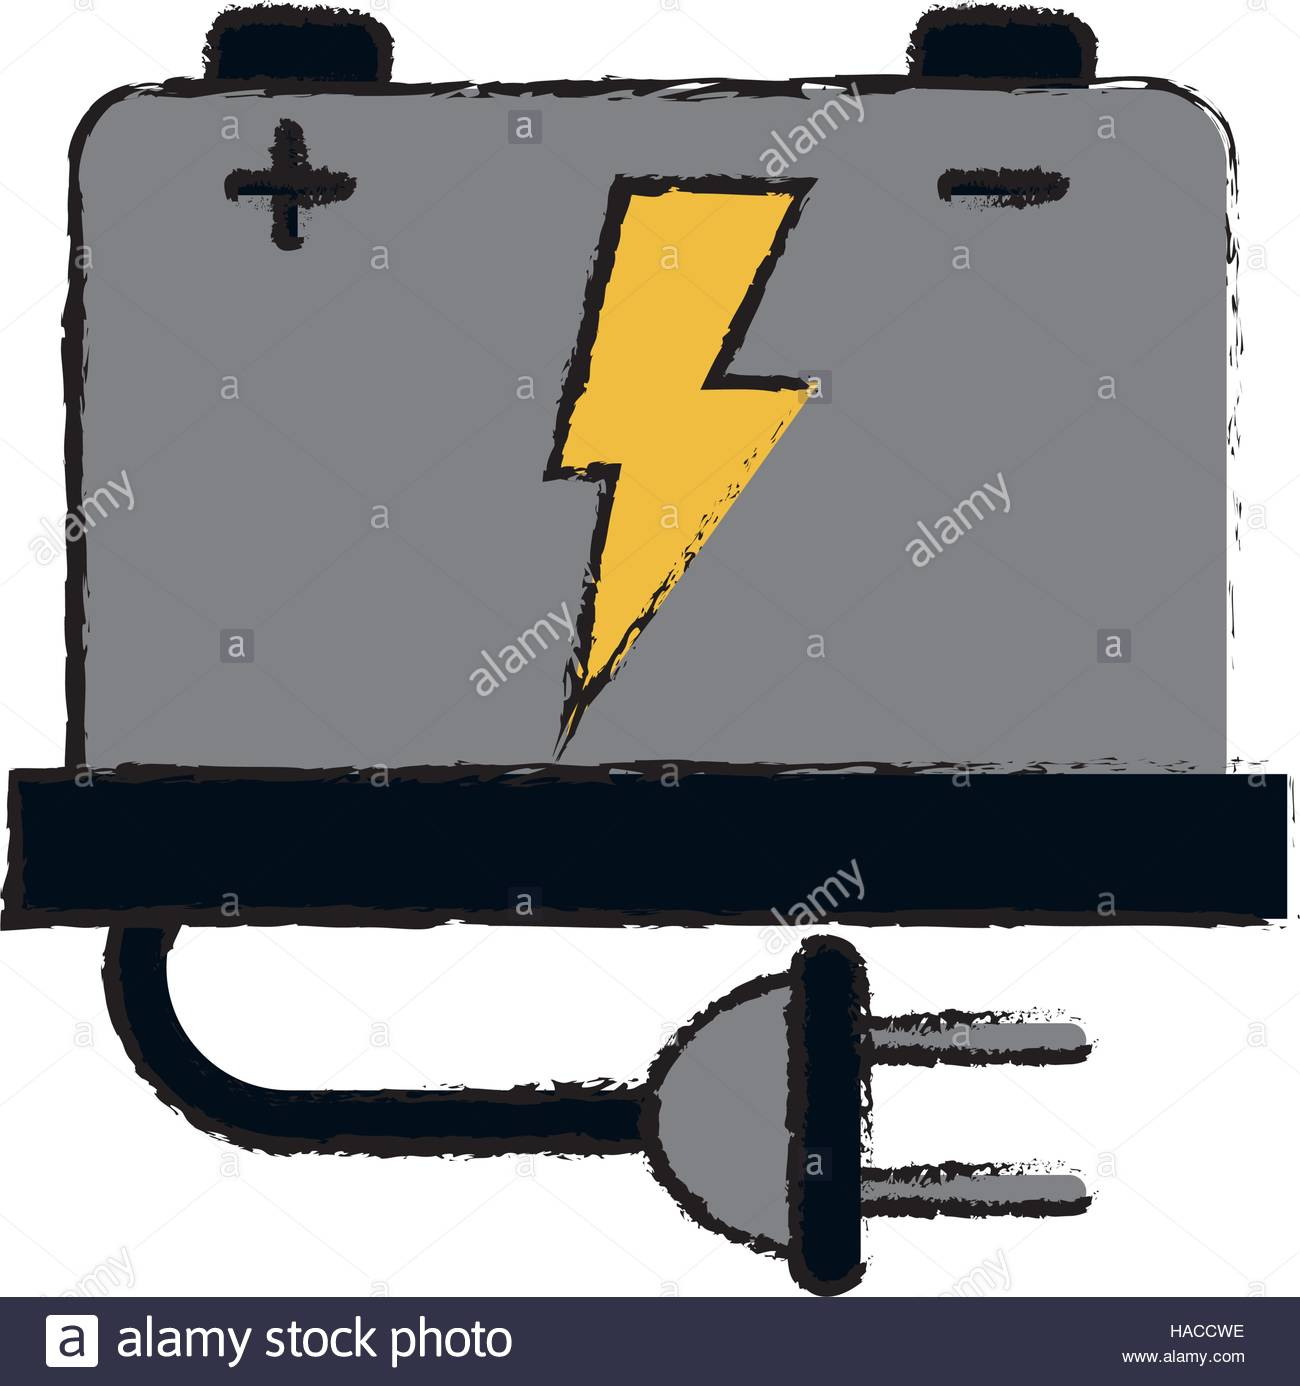 1300x1386 Drawing Car Battery High Voltage Mechanic Plug Stock Vector Art